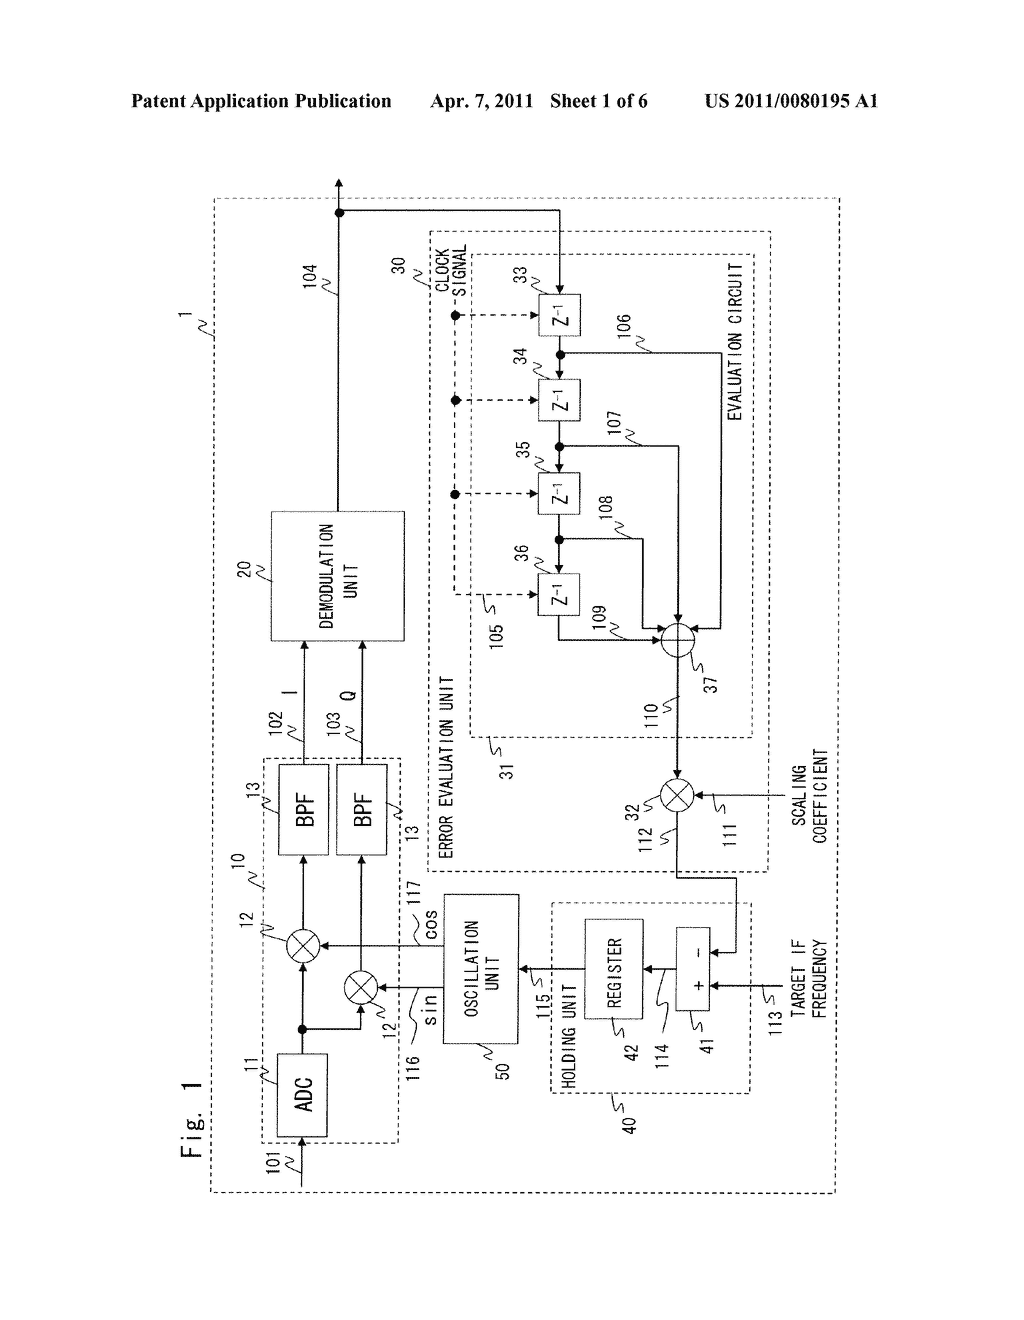 hight resolution of automatic frequency control circuit diagram schematic and image 02 for this control circuit presented in this schematic the frequencies